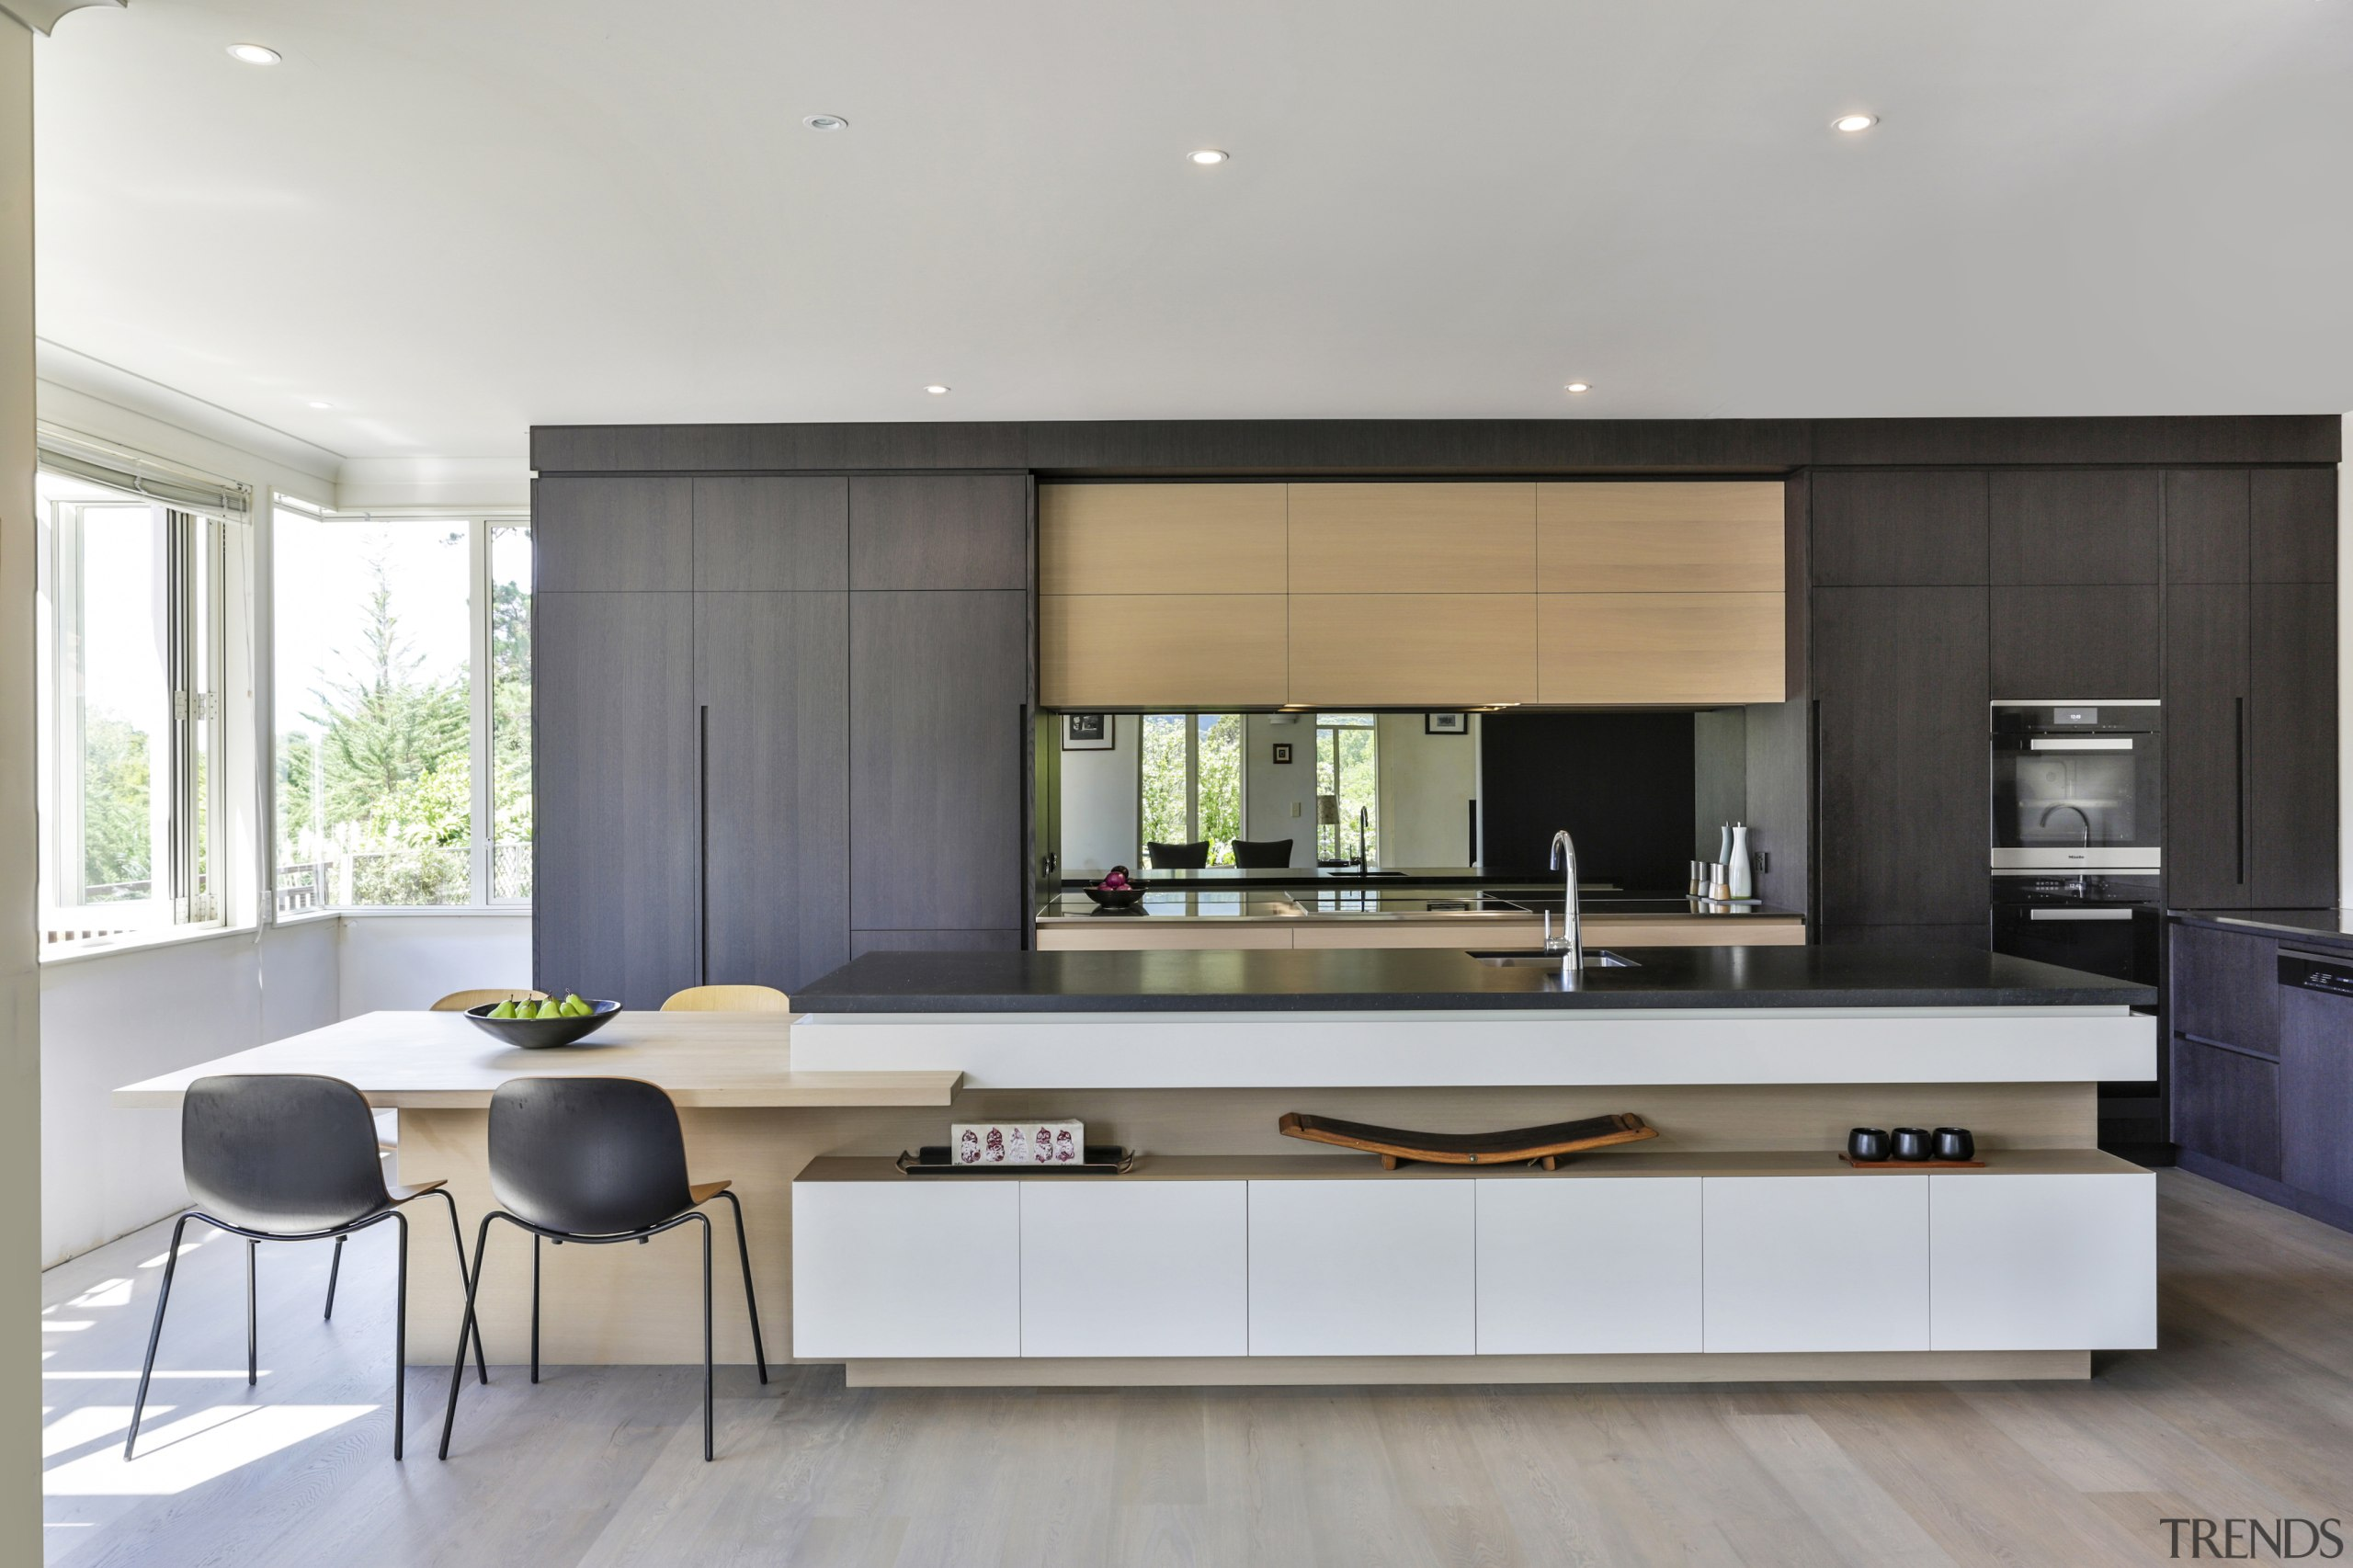 This clean-lined kitchen has a pared back almost